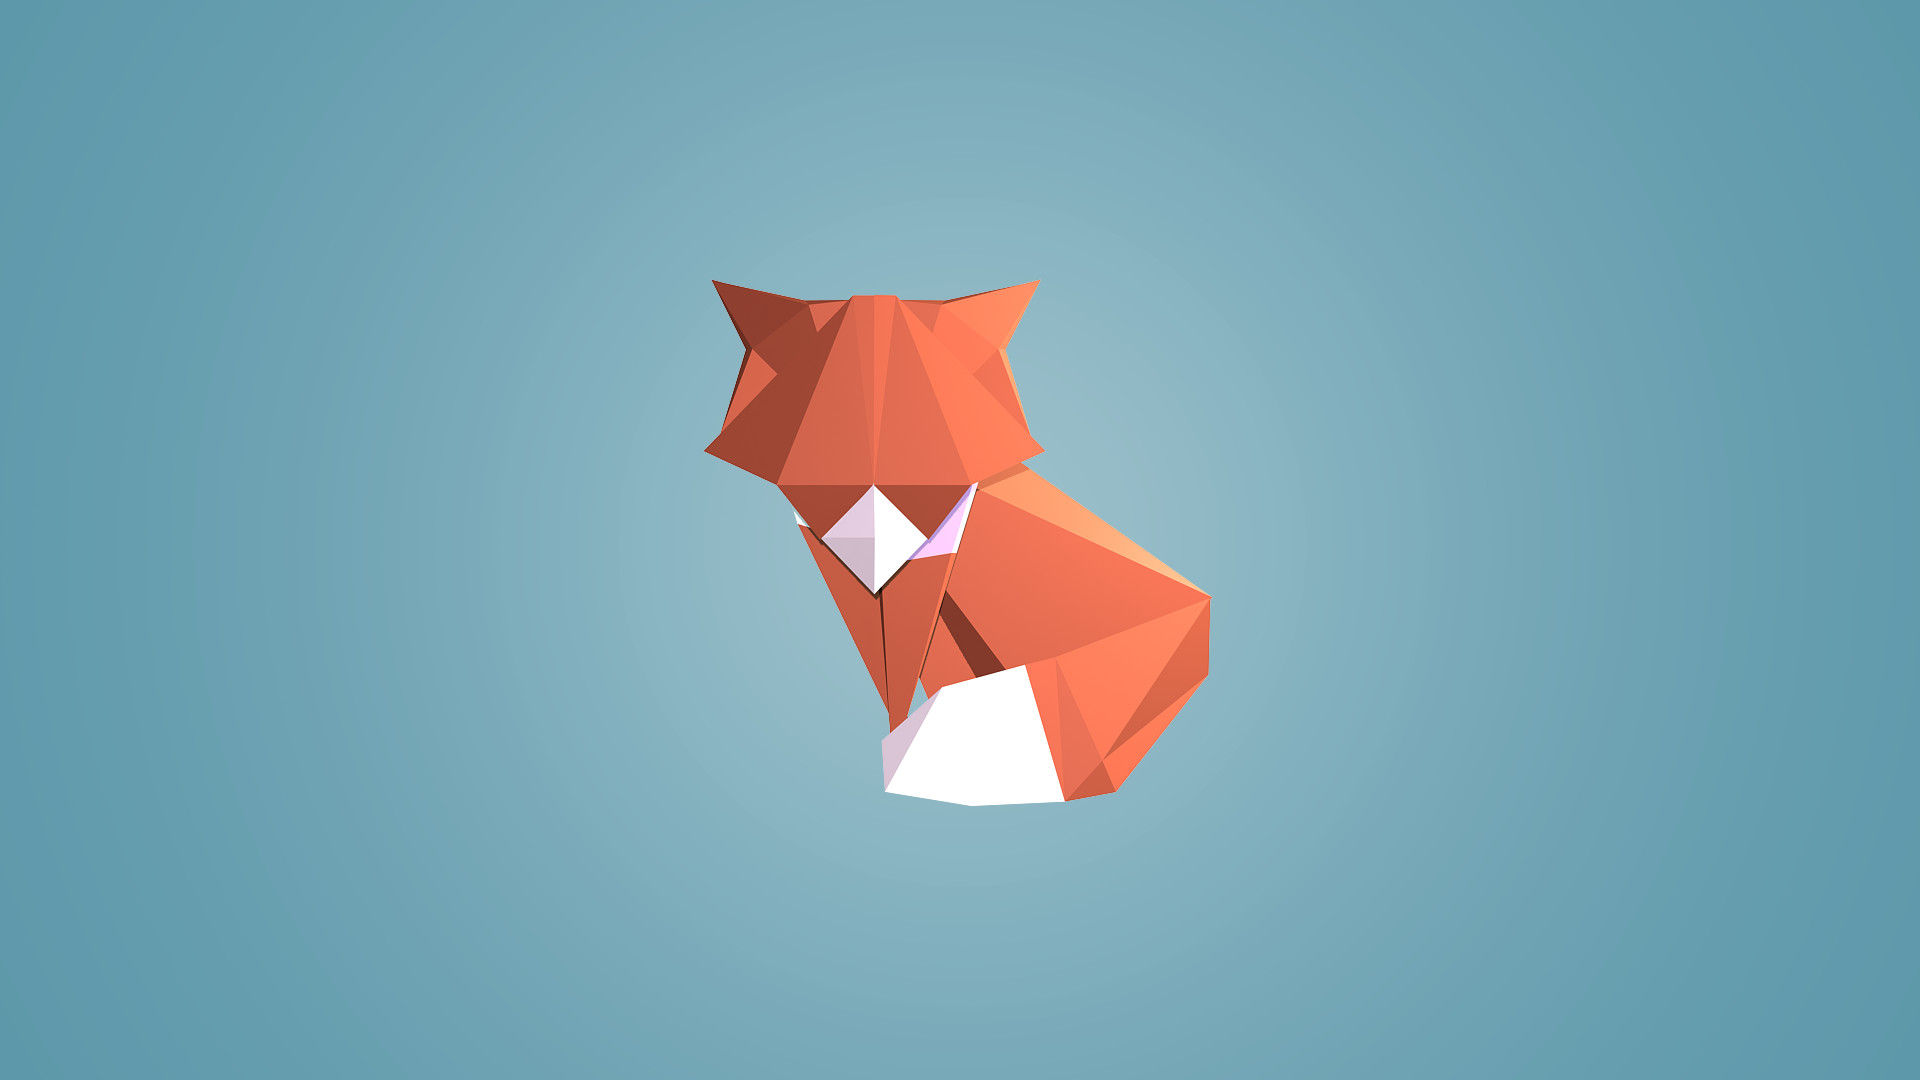 digital Art, Low Poly, Animals, Fox, Blue Background, Simple Background,